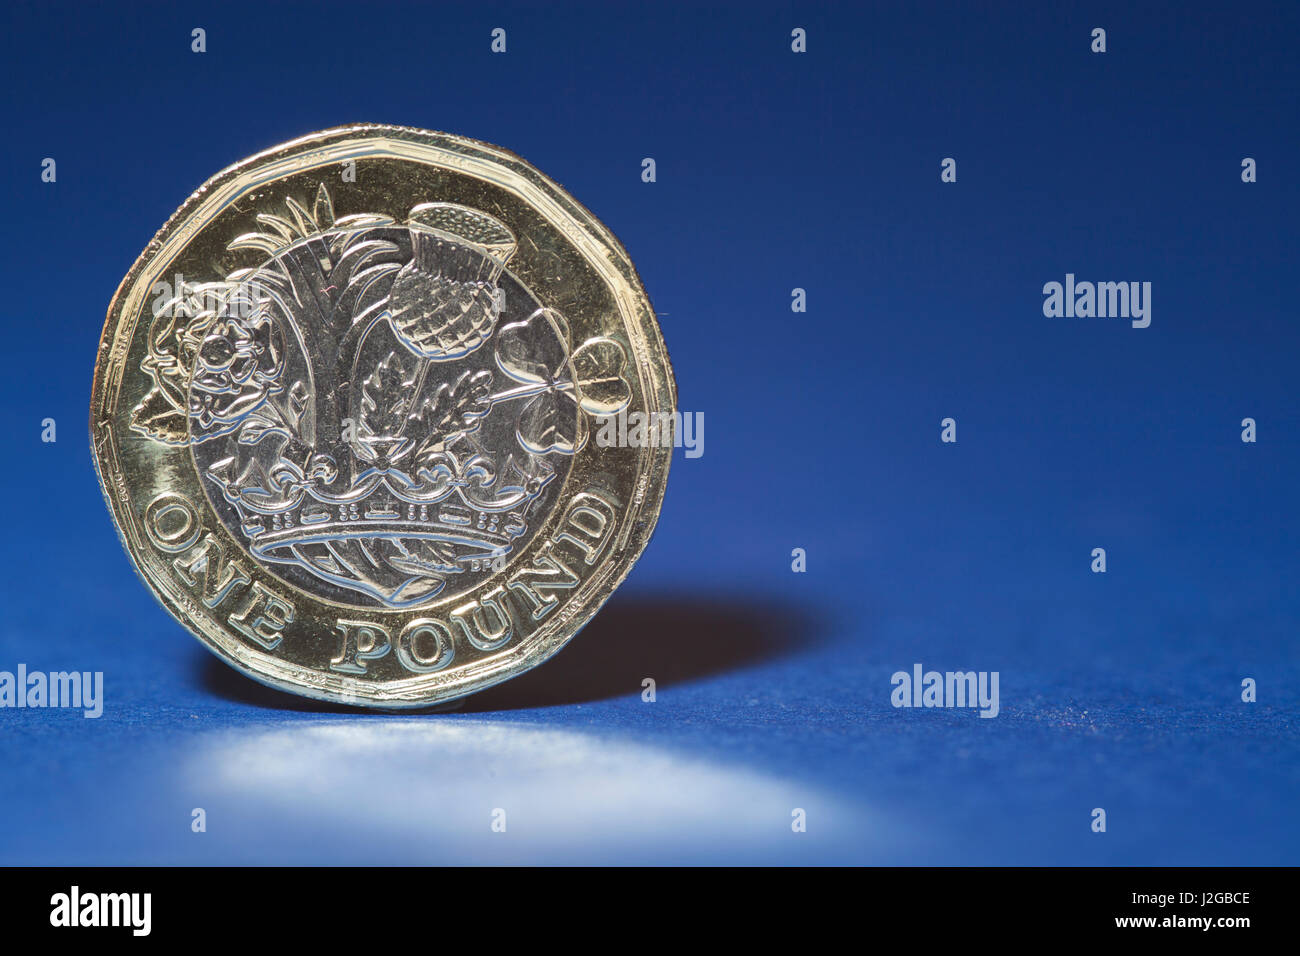 New pound coin 2012, 12 sided - Stock Image